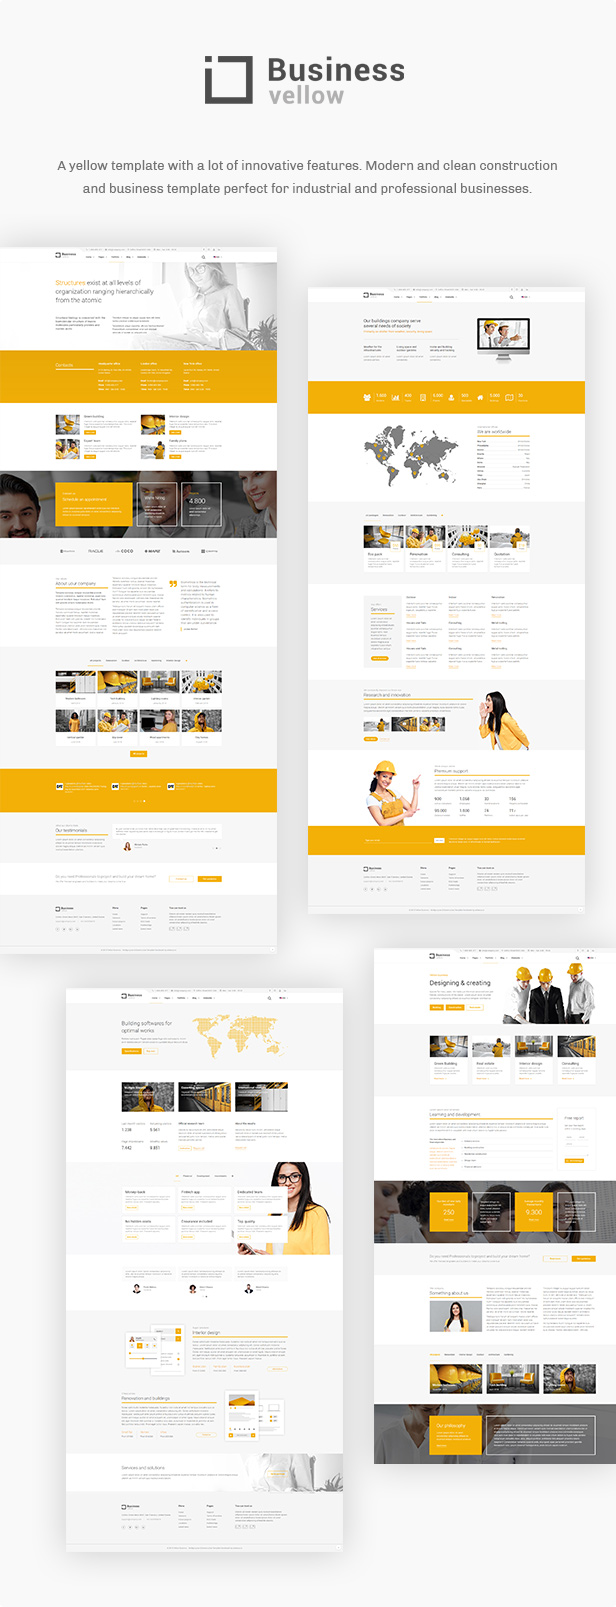 Yellow Business - Construction And Businesses Joomla Template